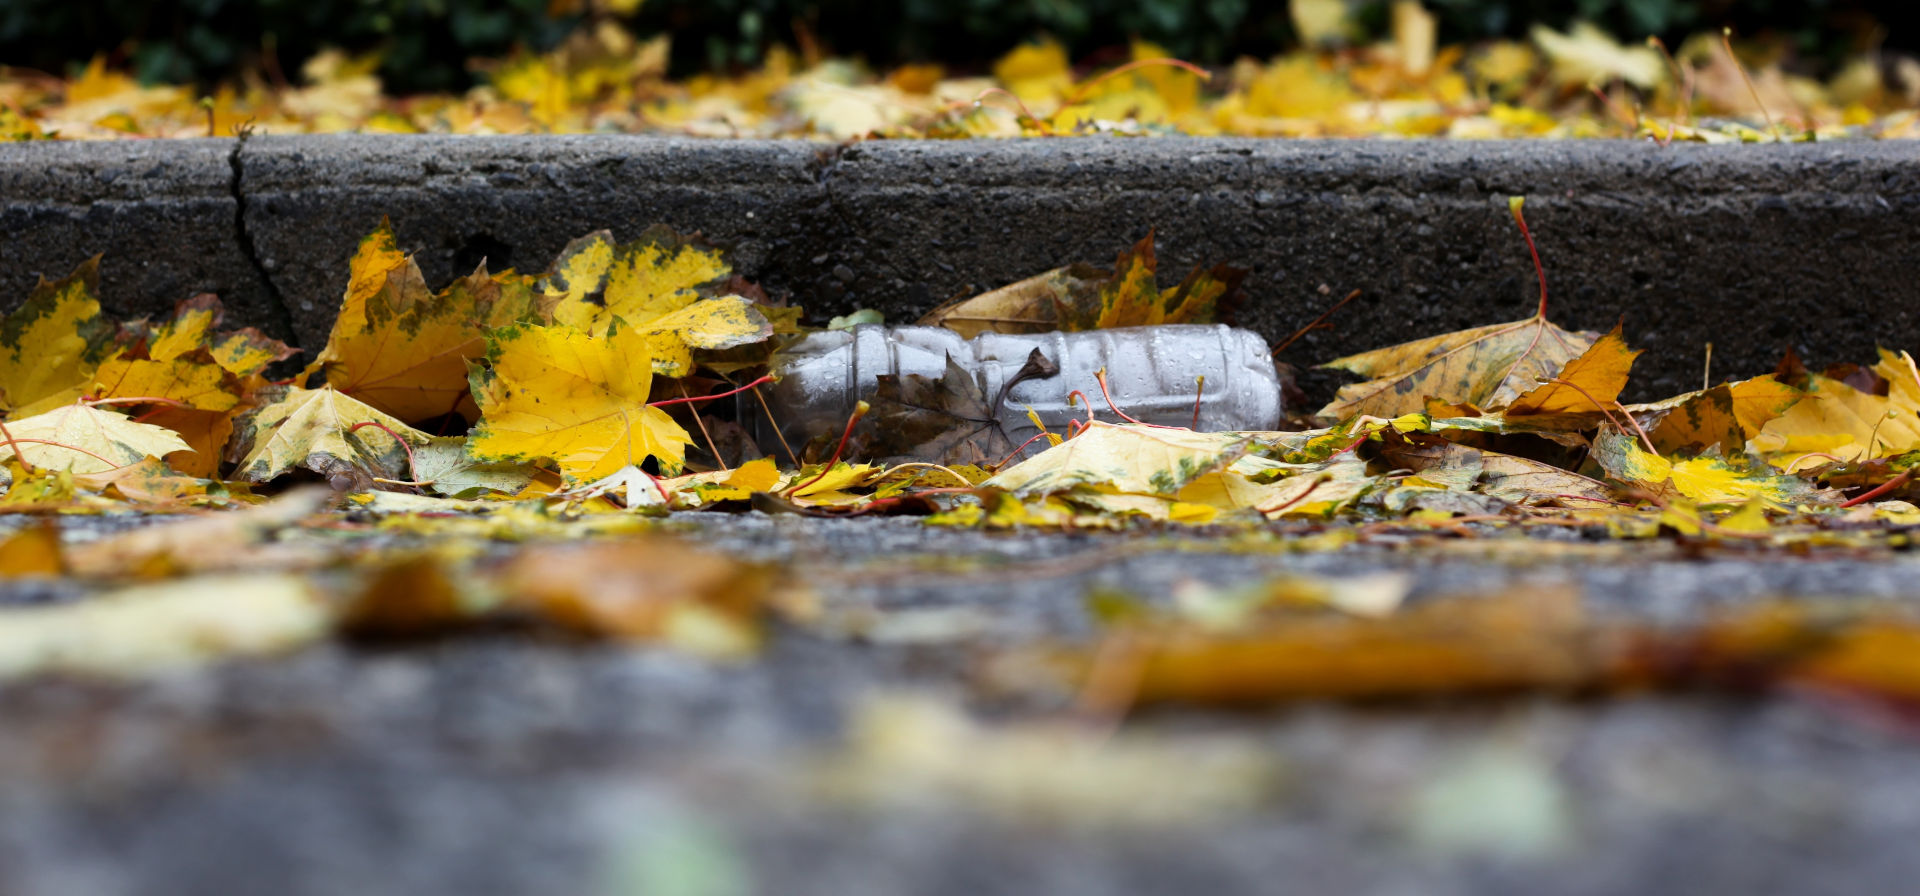 It is just an empty plastic bottle, alone and innocent and causing a nuisance for the next few hundred years